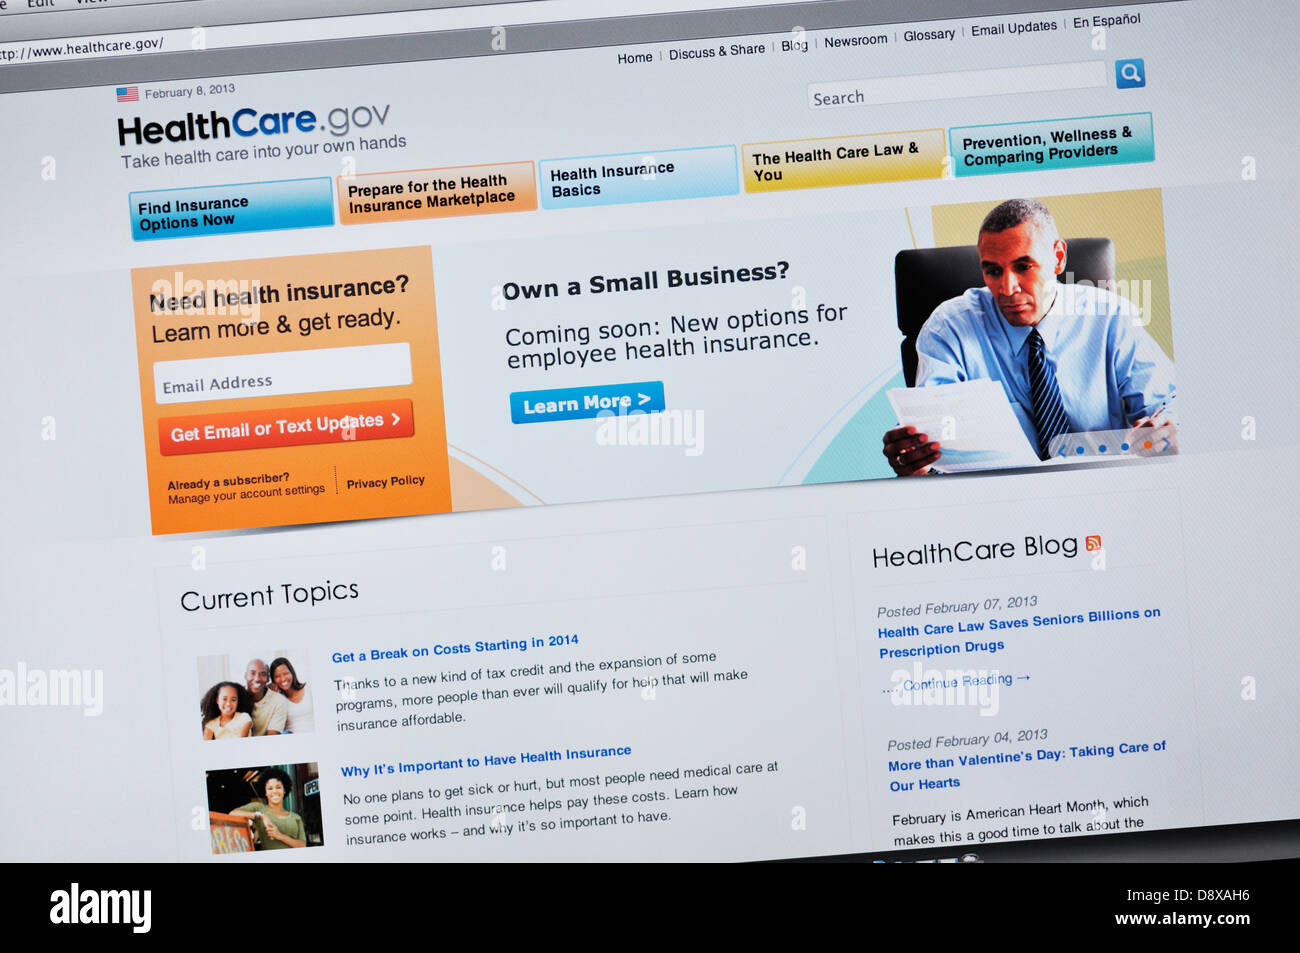 Healthcare Gov Quotes Entrancing Healthcare.gov Website  Online Health Insurance Quotes Stock